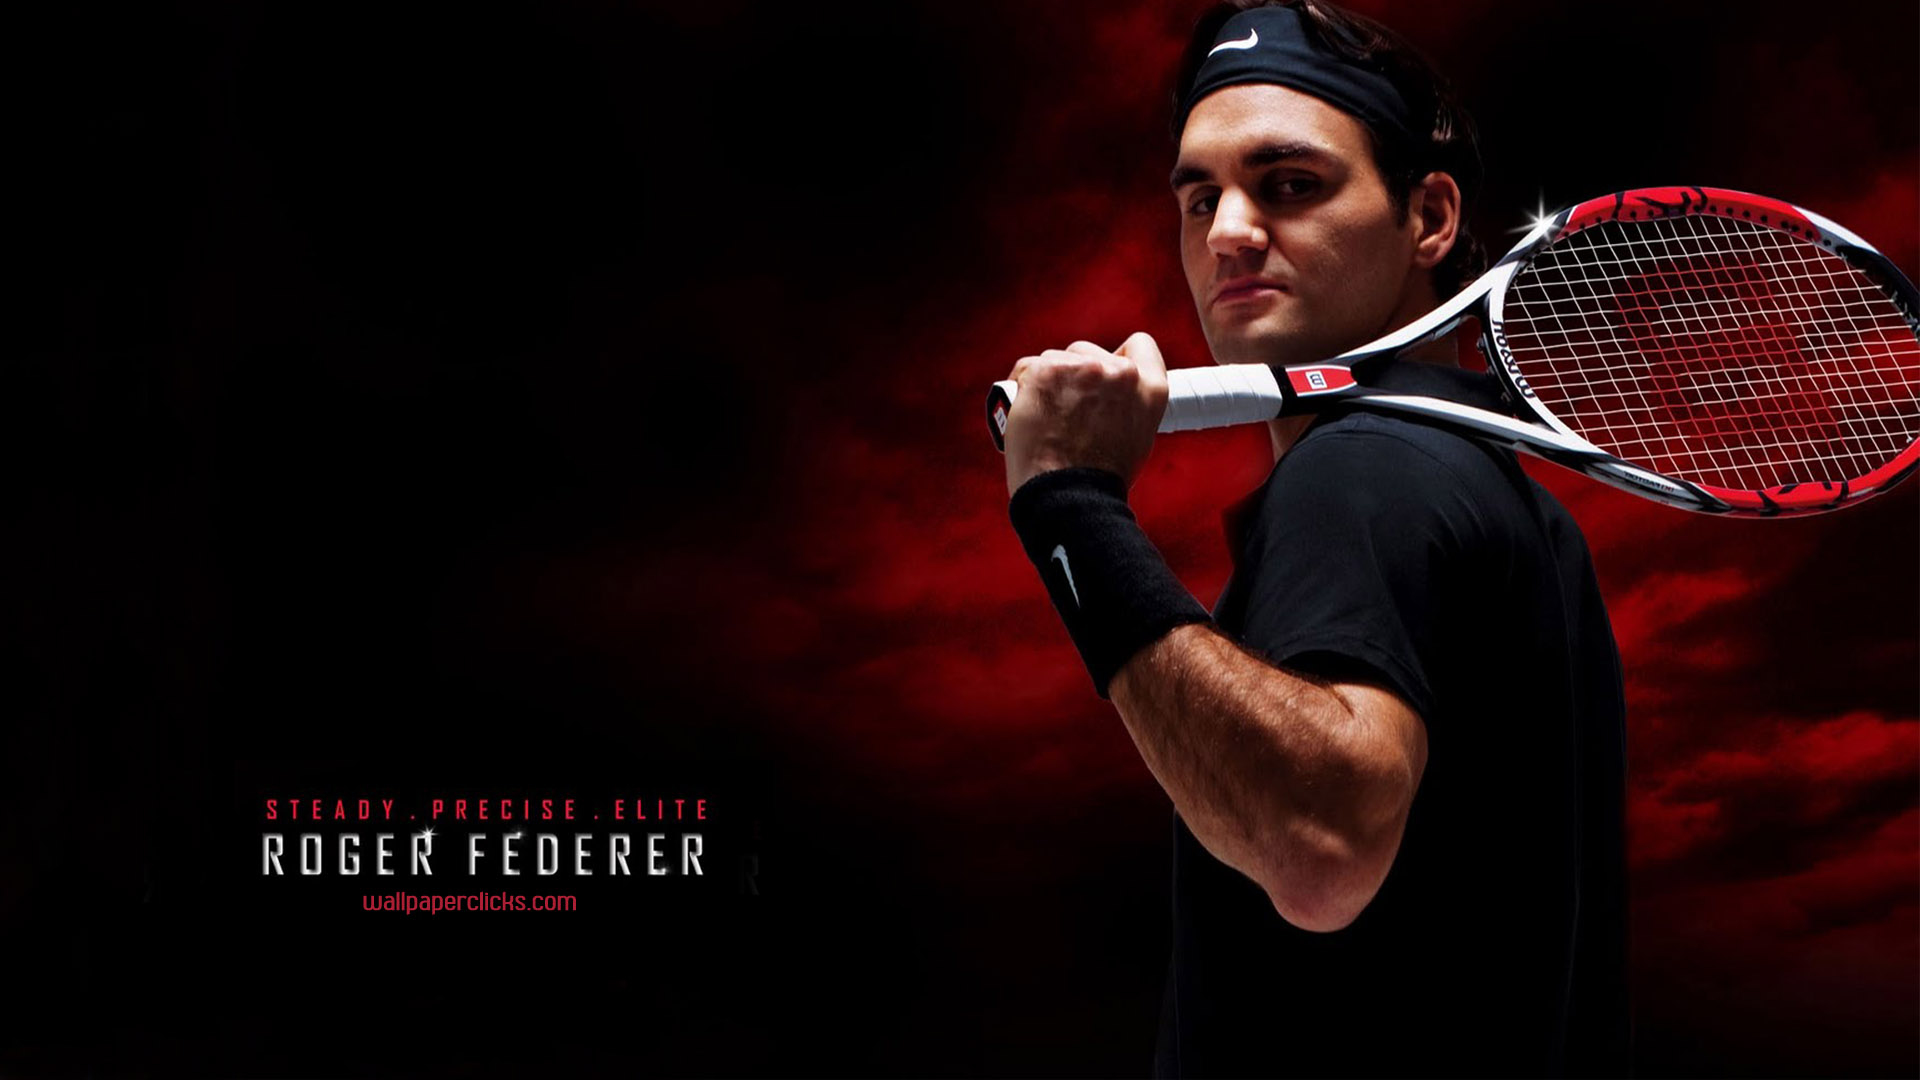 Roger Federer Wallpapers Download JA3123Y   4USkY 1920x1080